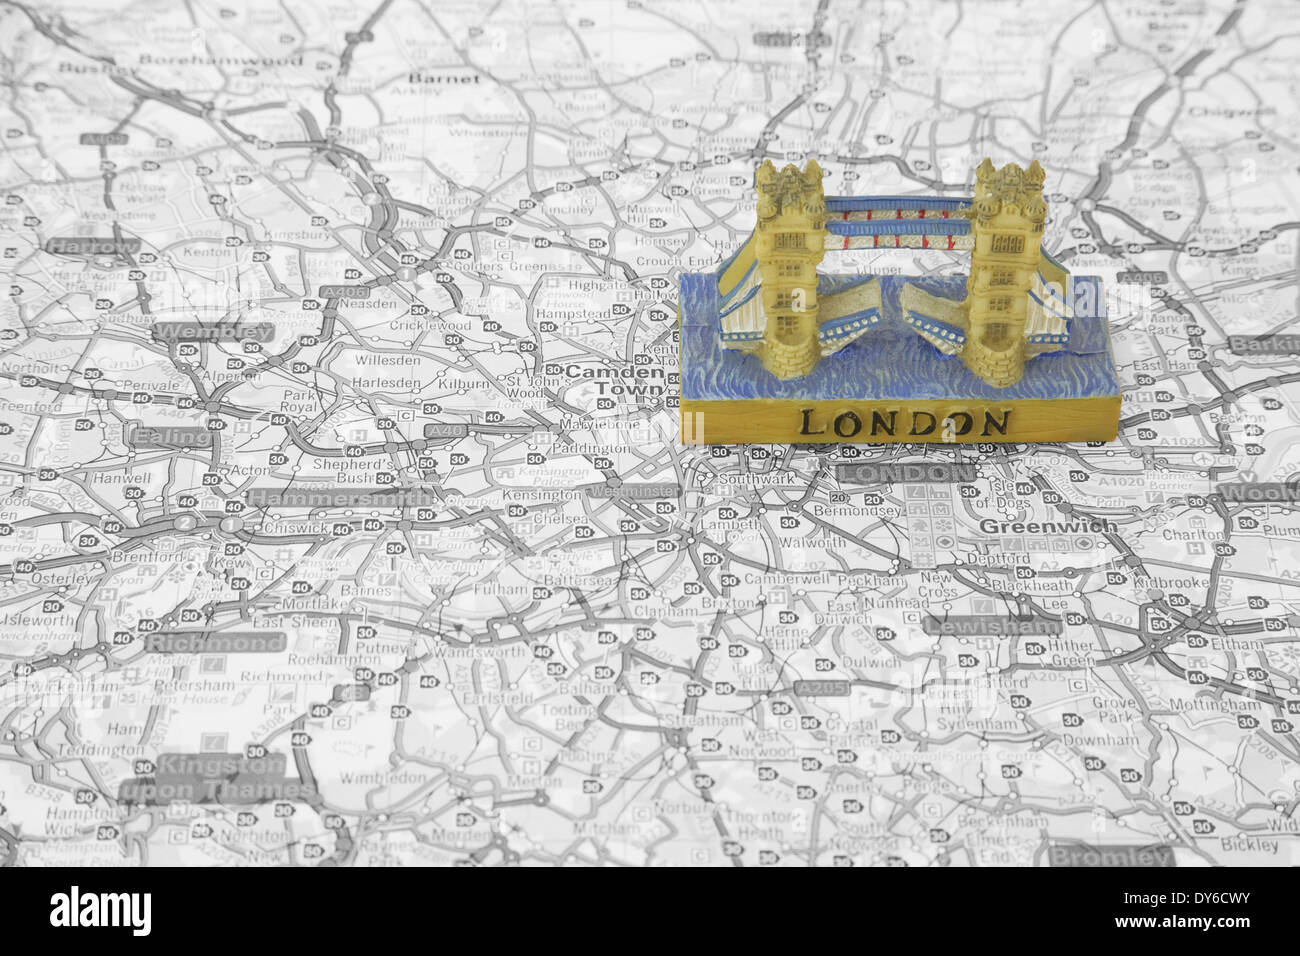 Map London Bridge.Small Model Of Tower Bridge On Top Of A Map Of London Stock Photo